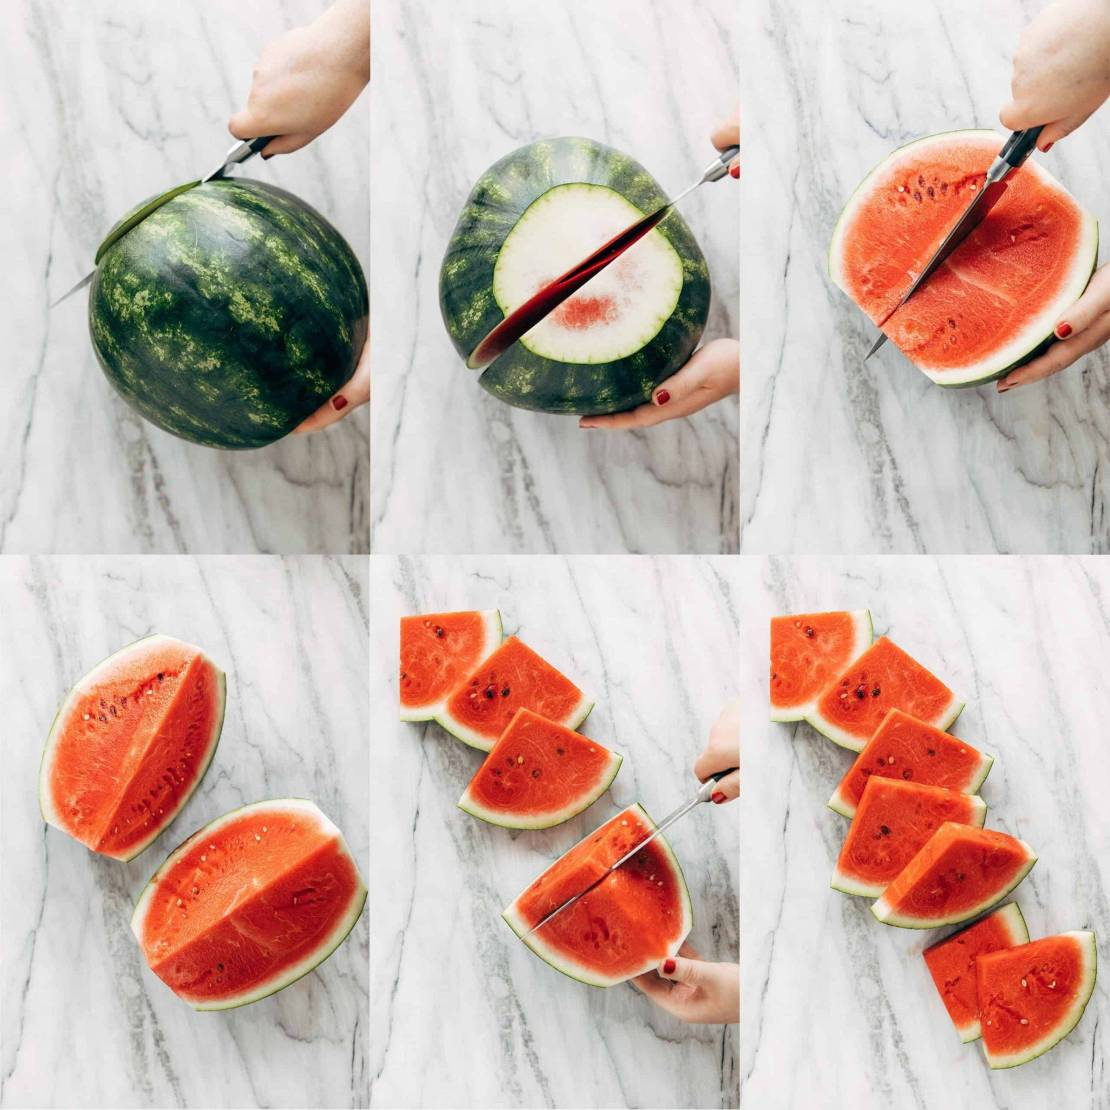 Collage showing how to cut a watermelon into triangles.